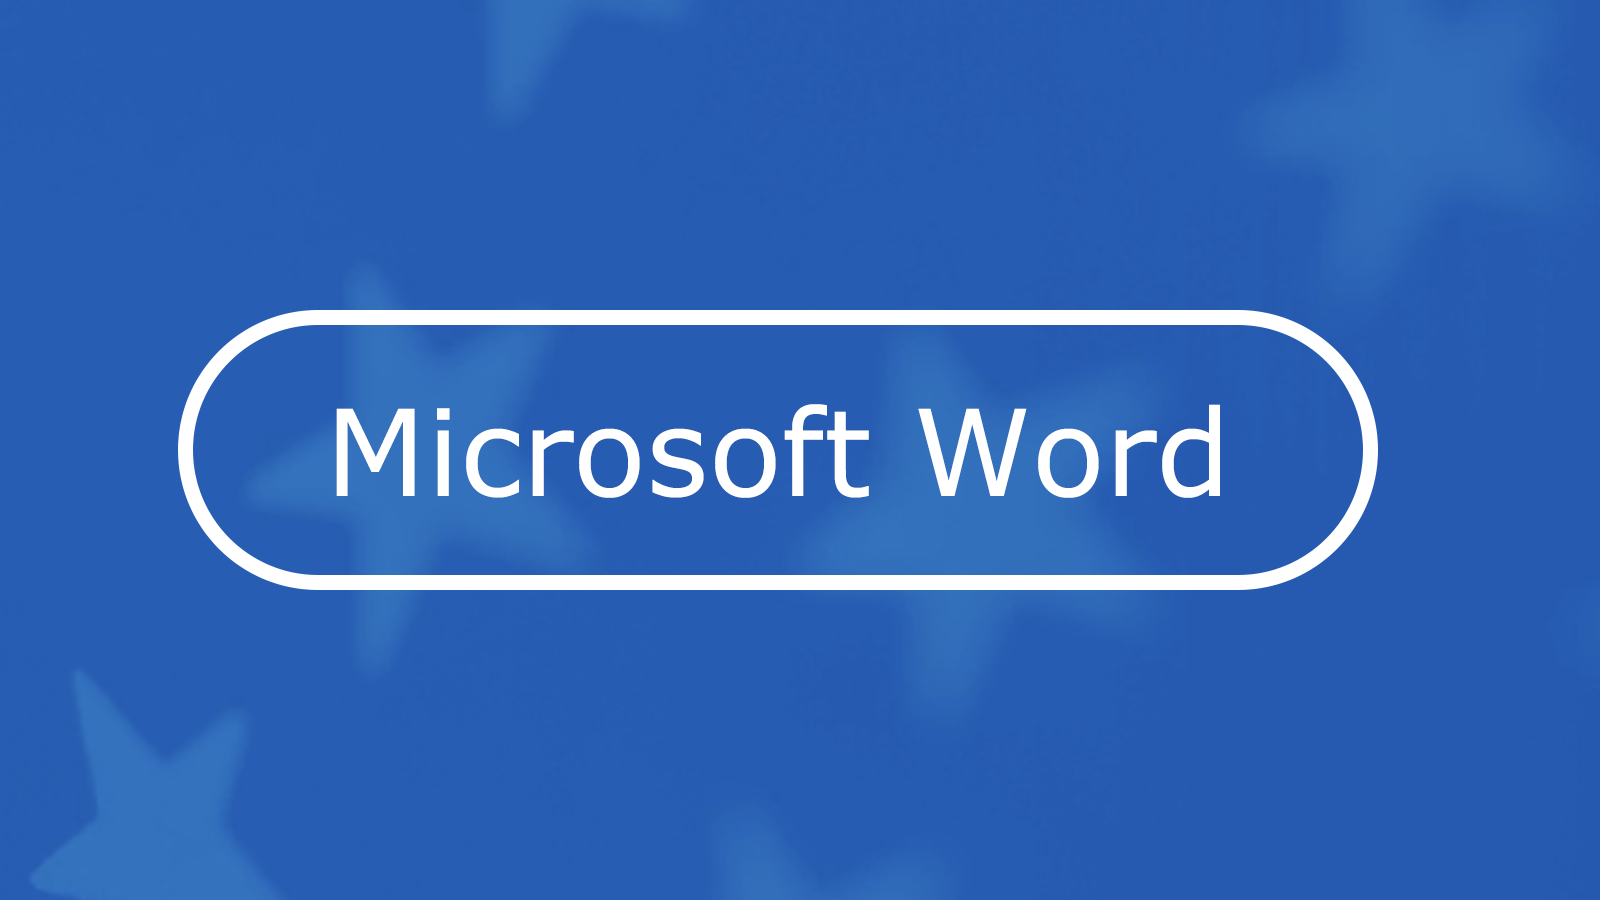 How to Make an Accessible Document in Microsoft Word